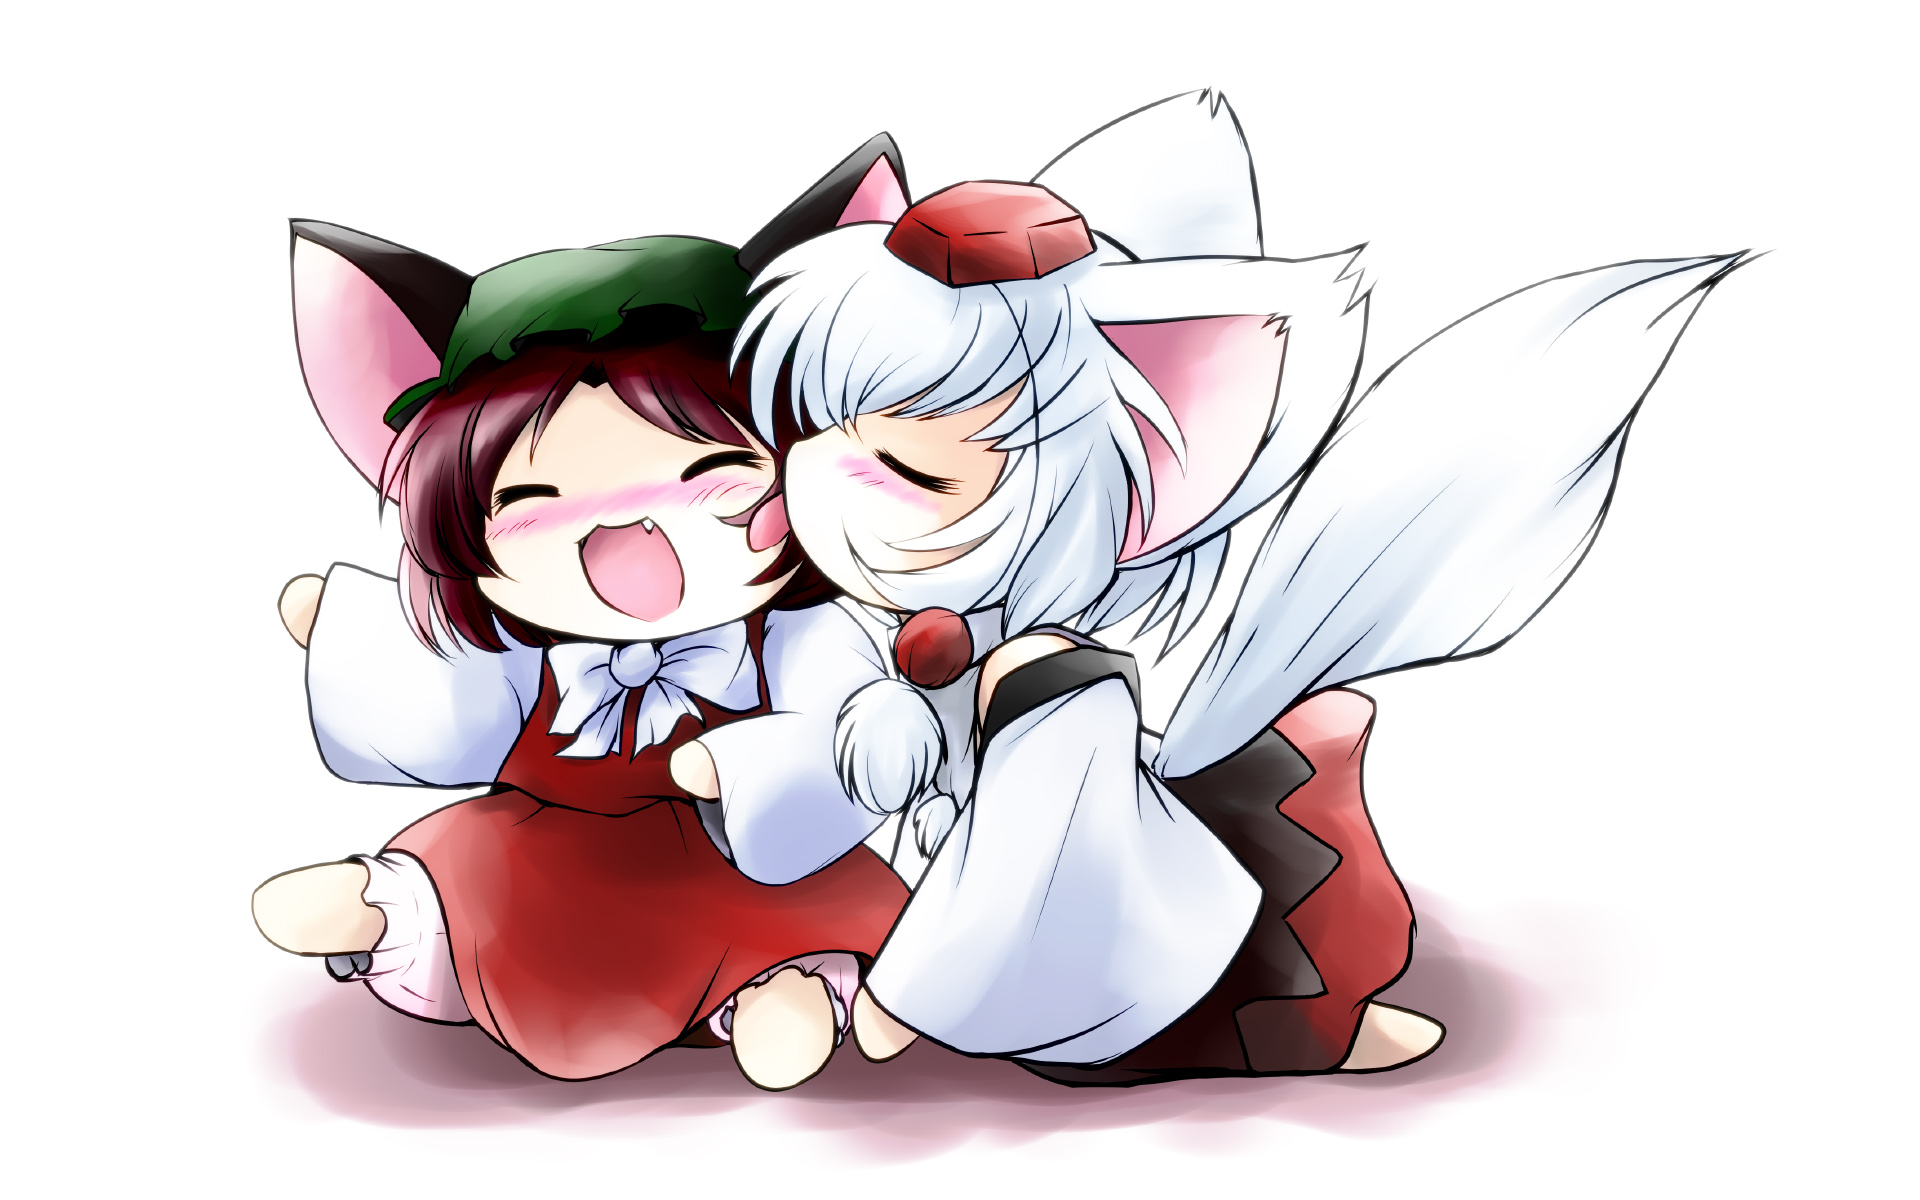 2girls animal_ears bloomers blush brown_hair catgirl chen chibi dress fang hat inubashiri_momiji japanese_clothes miko tail touhou white white_hair wolfgirl yume_shokunin